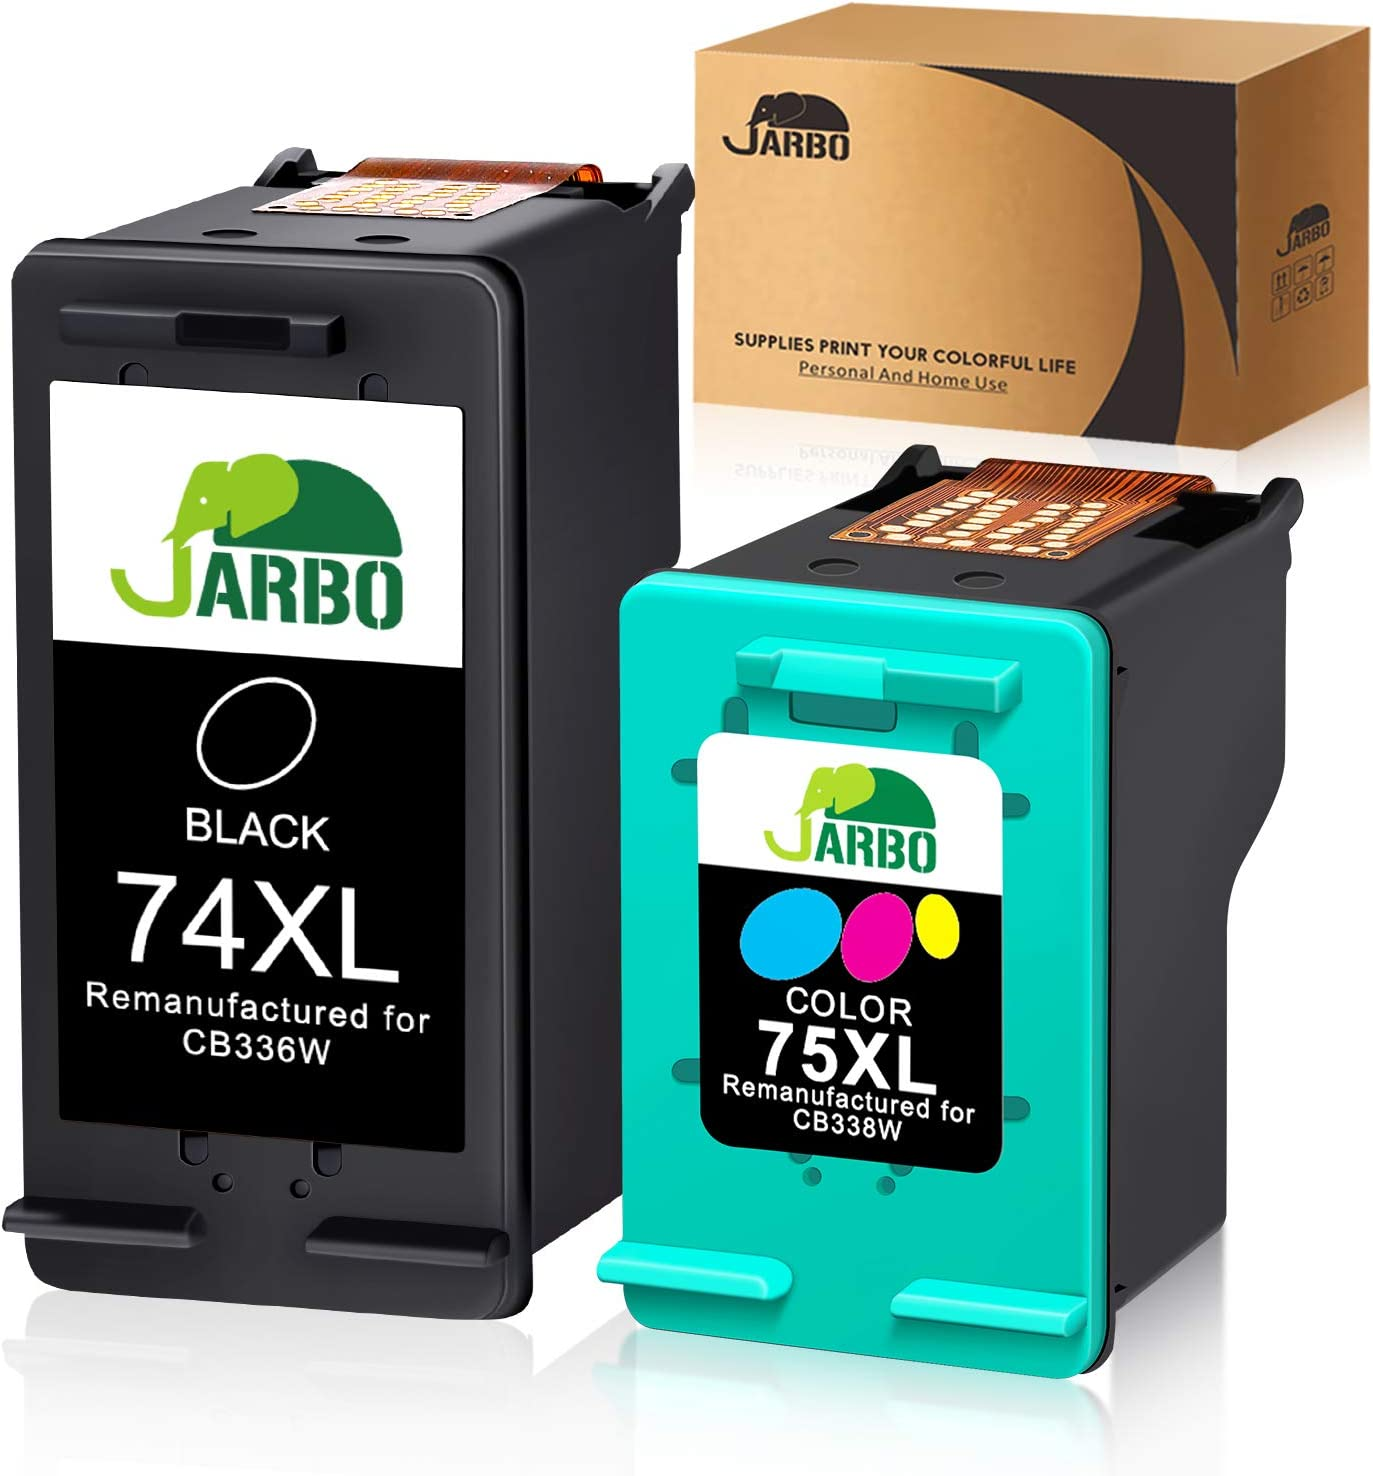 JARBO Manufactured Ink Cartridge for HP 74 75, HP 74XL 75XL, 1 Black+1 Tri-Color, Use with HP Officejet J6480 J5780 Deskjet D4260 D4360 Photosmart C4280 C5280 C4480 C4580 C4385 C5580